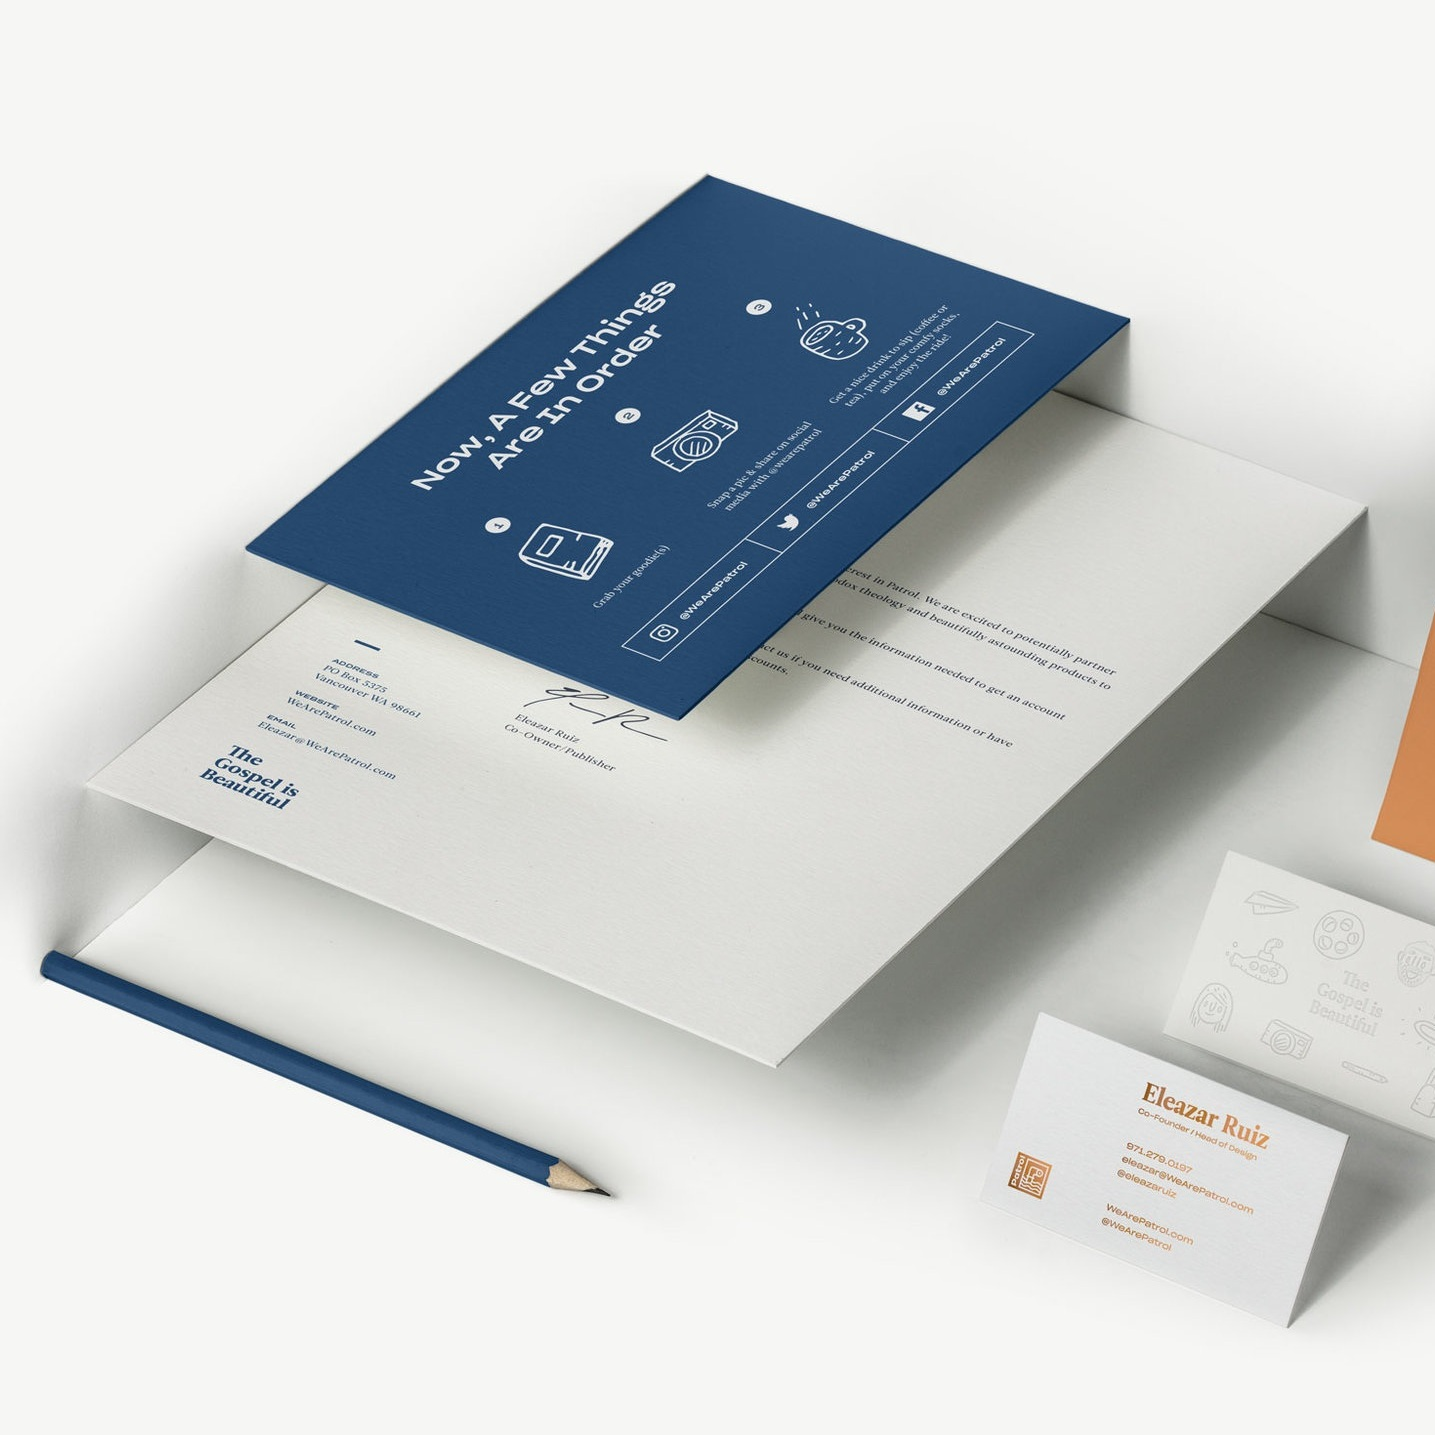 - PatrolArt Direction, Brand Identity, Web Design & Packaging